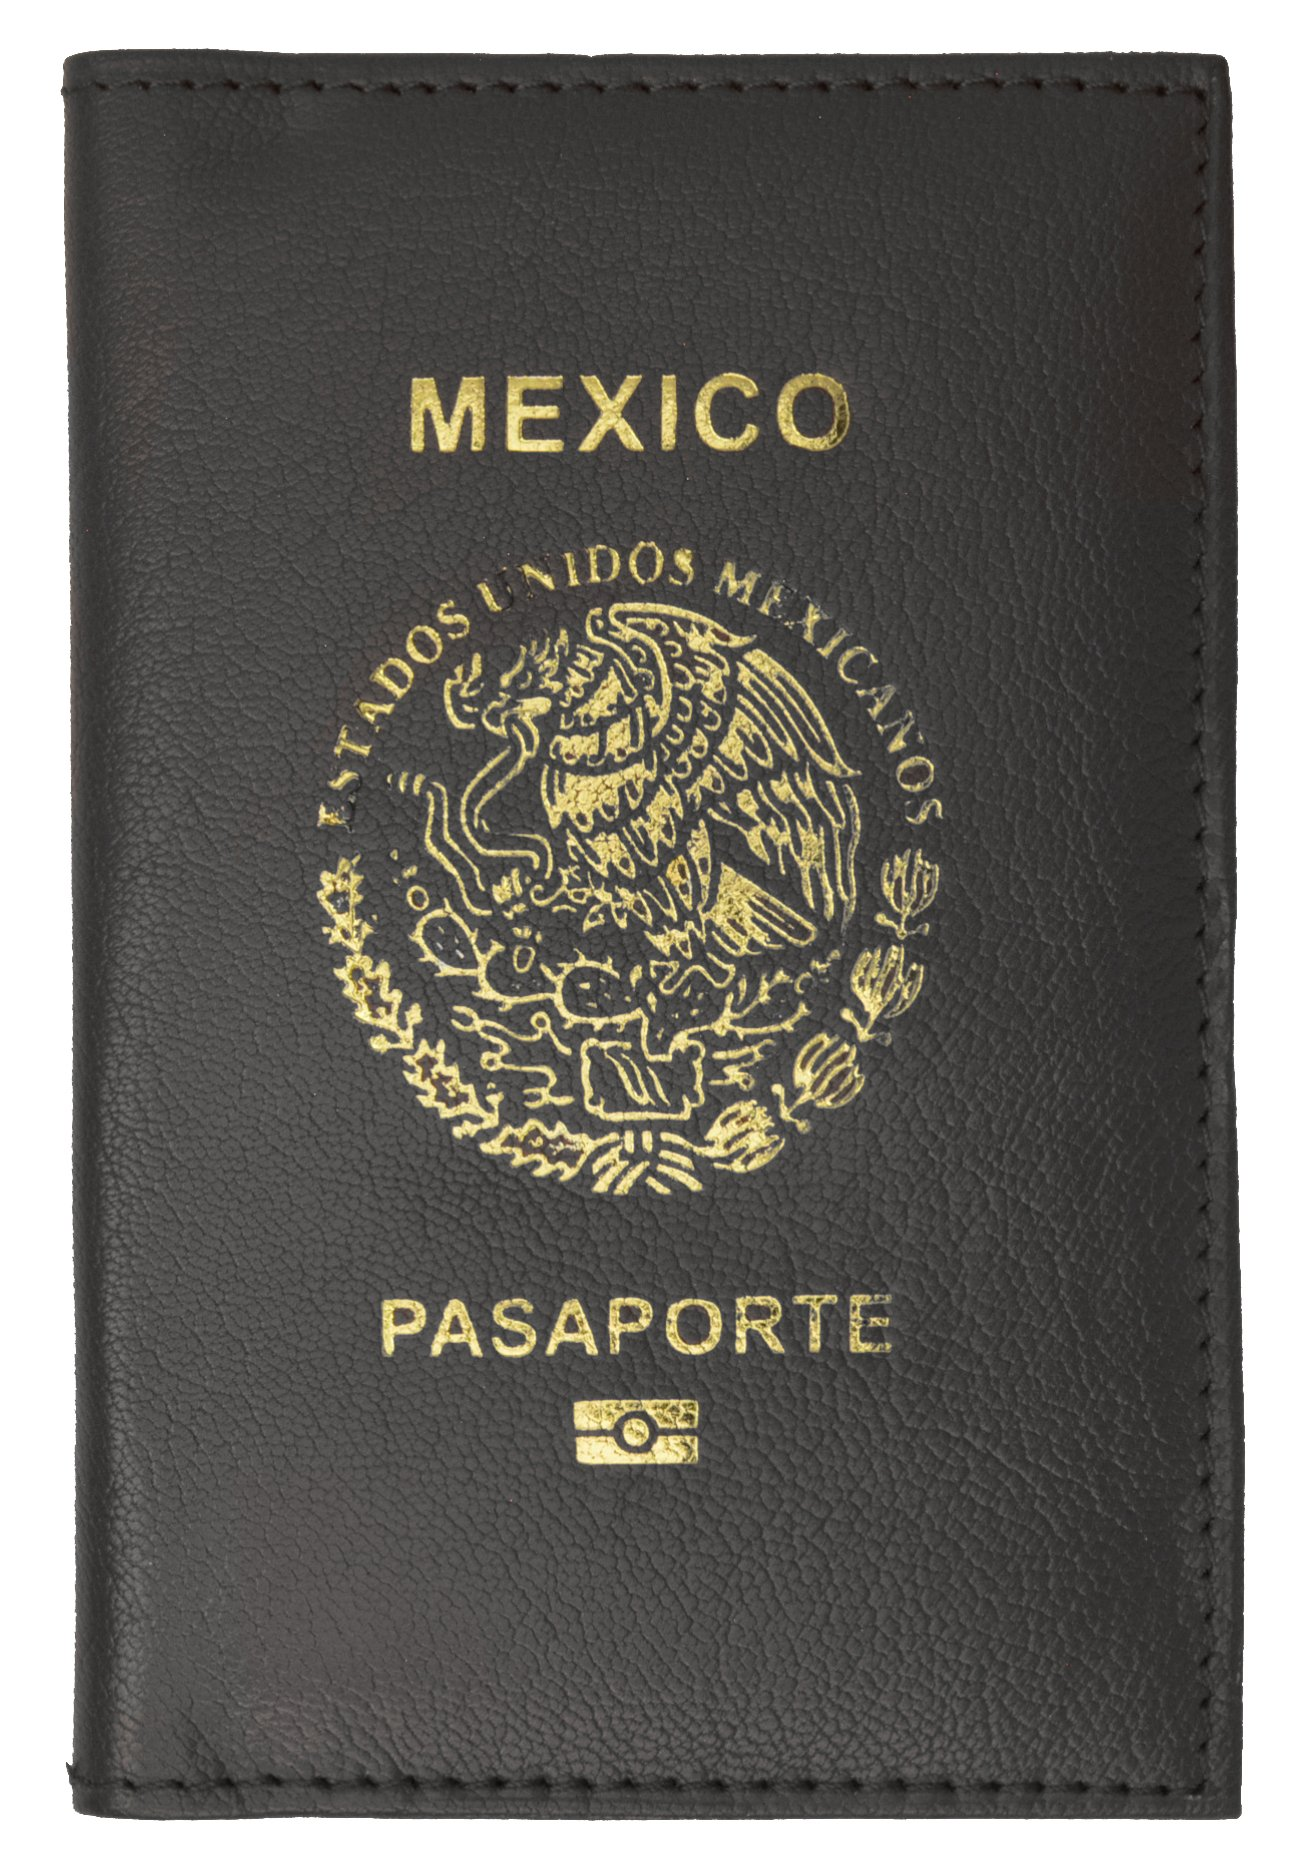 Mexico Passport Cover Genuine Leather Travel Wallet with Emblem Pasaporte (Black)